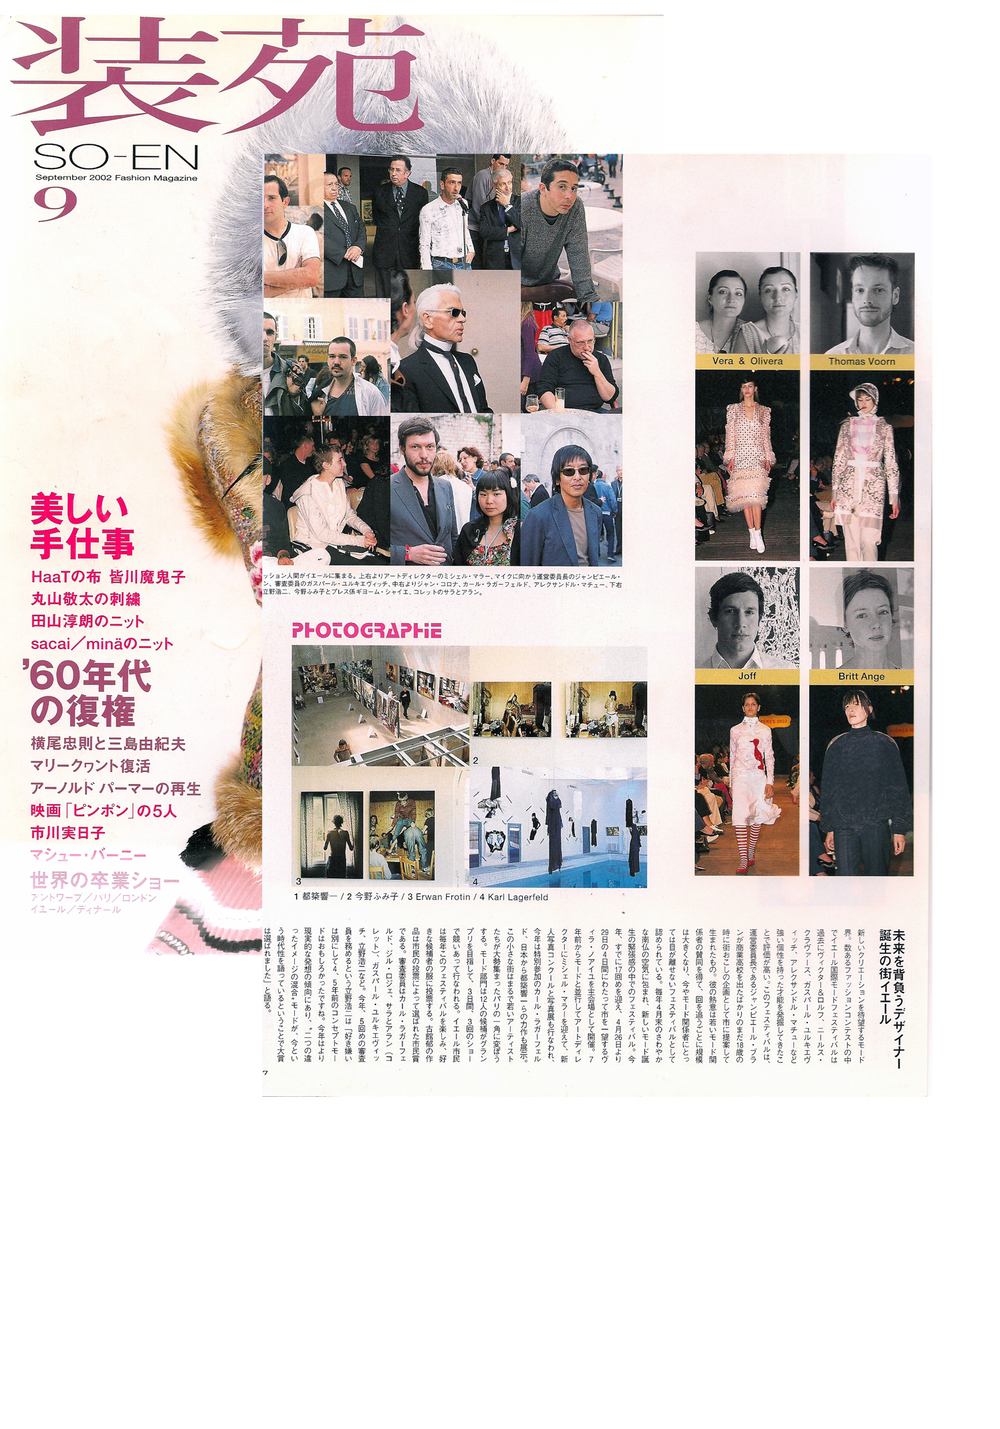 Press-SO-EN-magazine-Japan-on-Thomas-Voorn.jpg